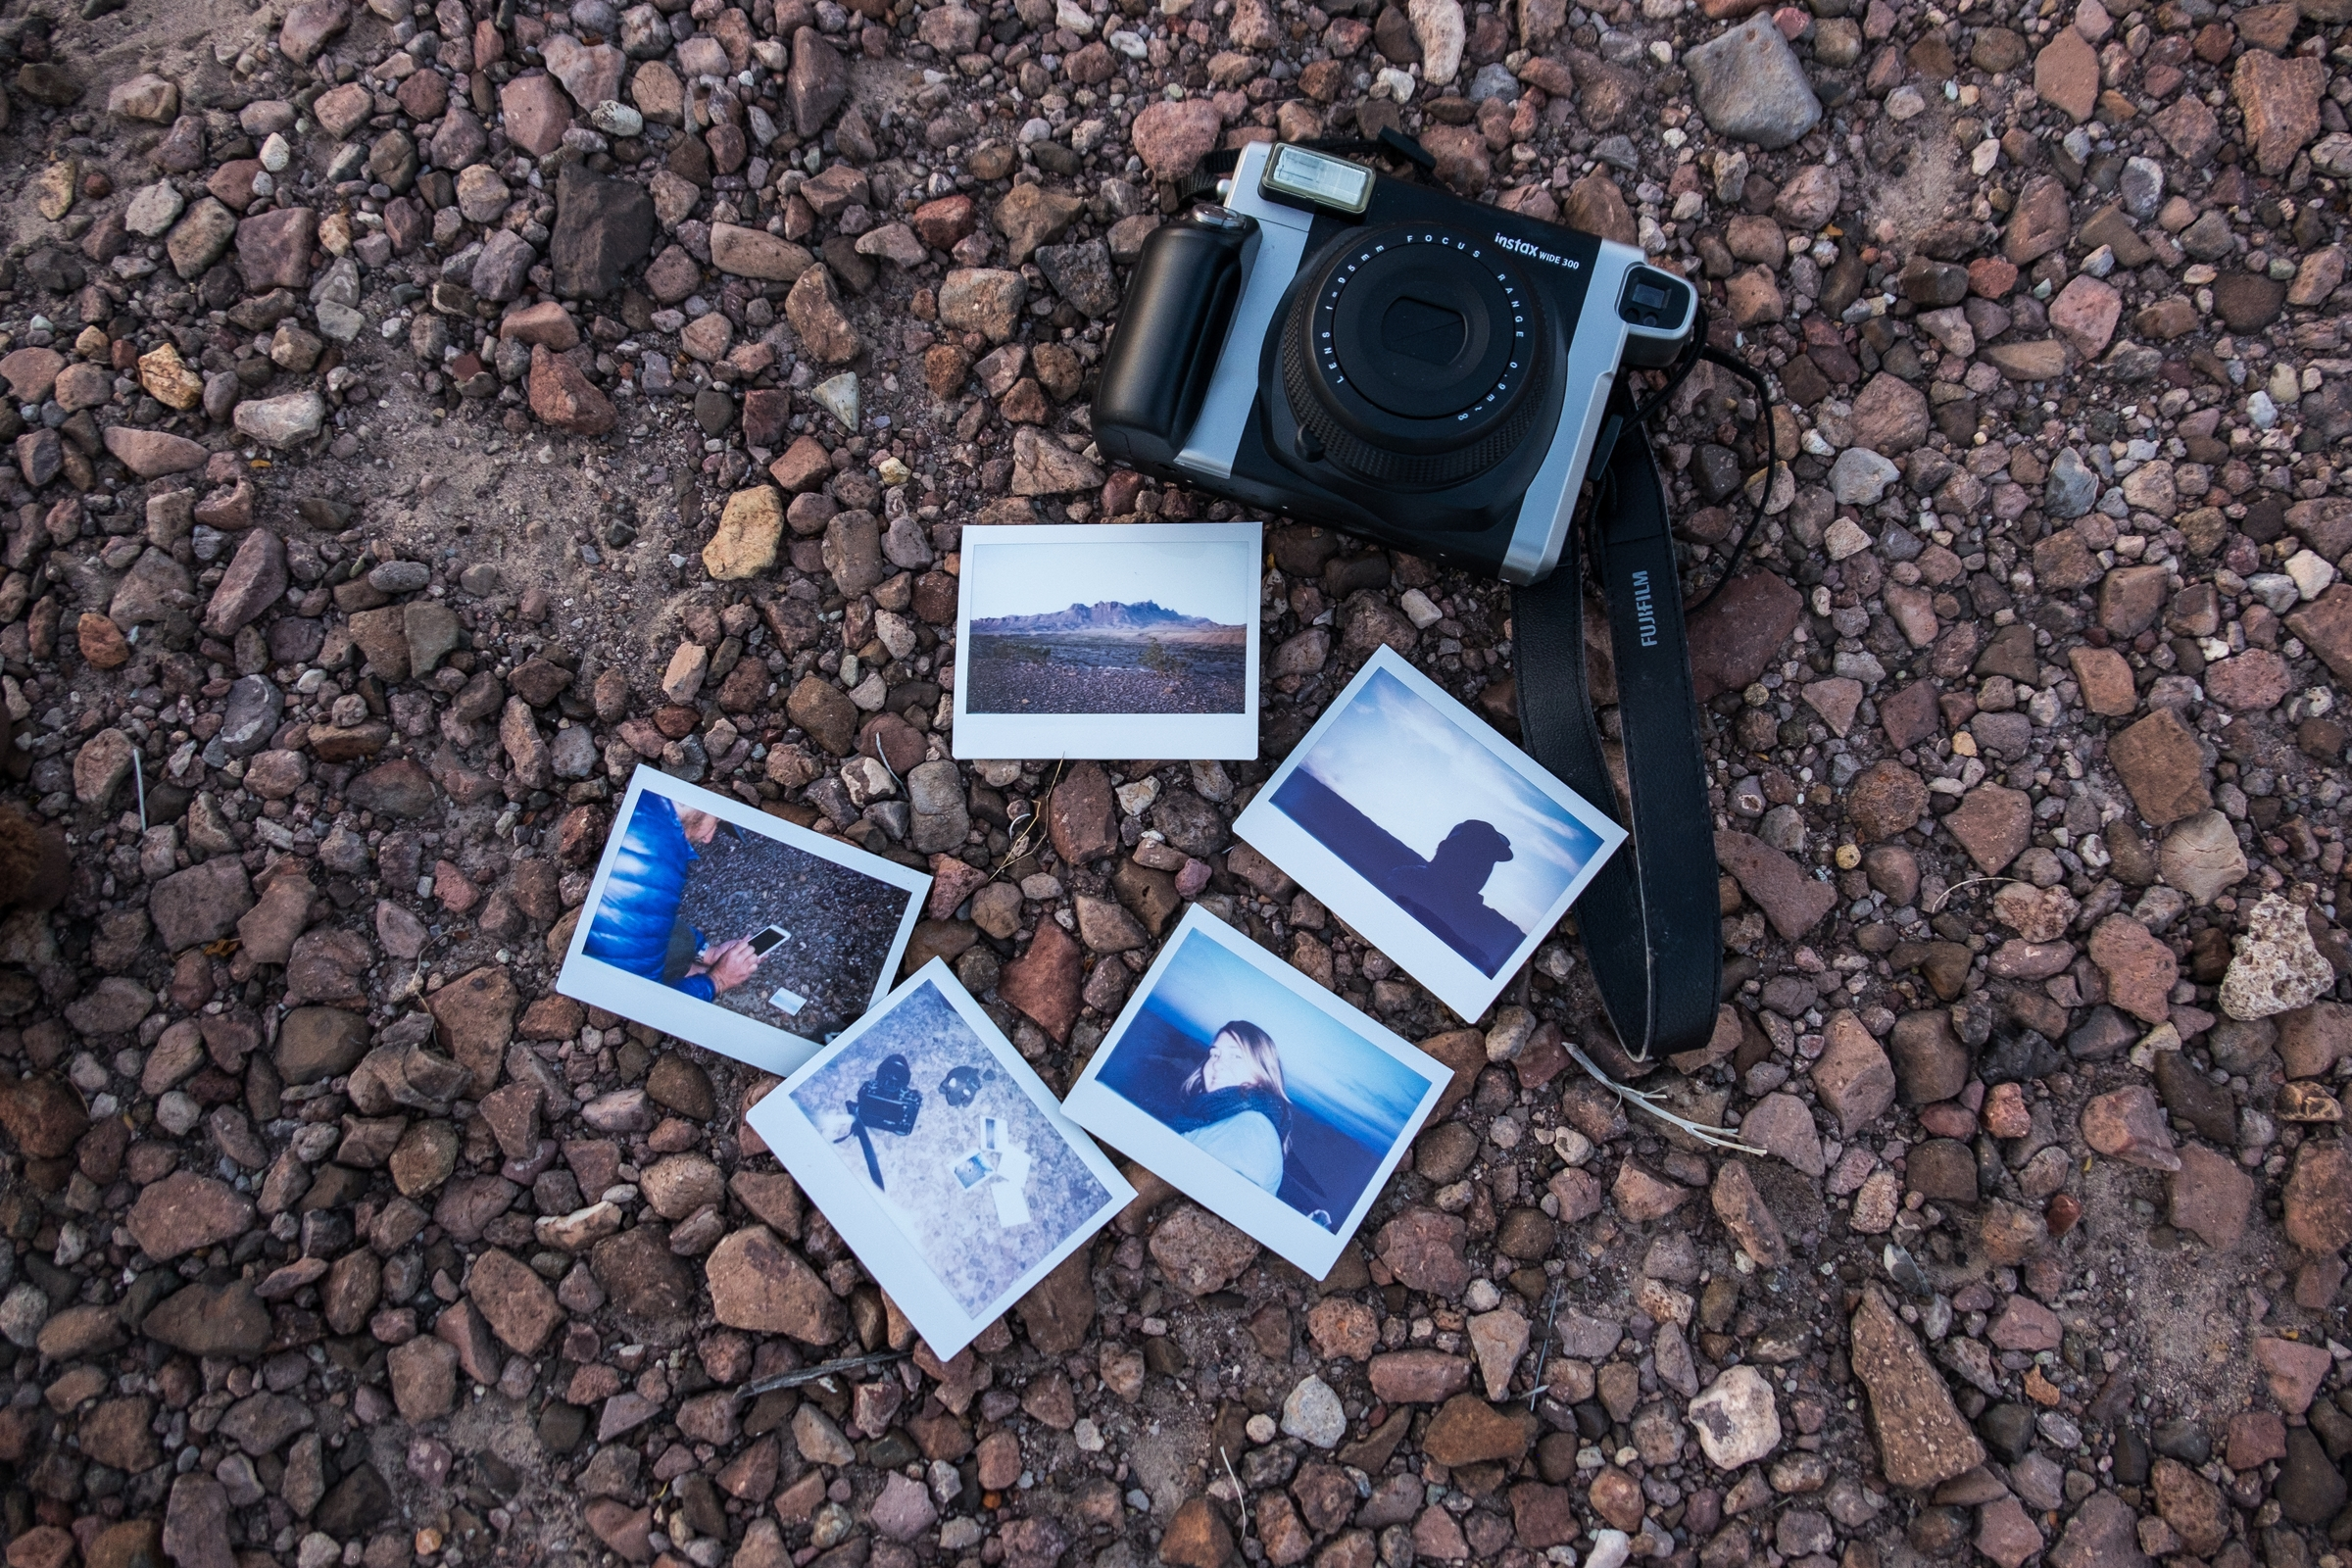 A Fujifilm Instax moment captured during sunset at Big Bend National Park in Texas.